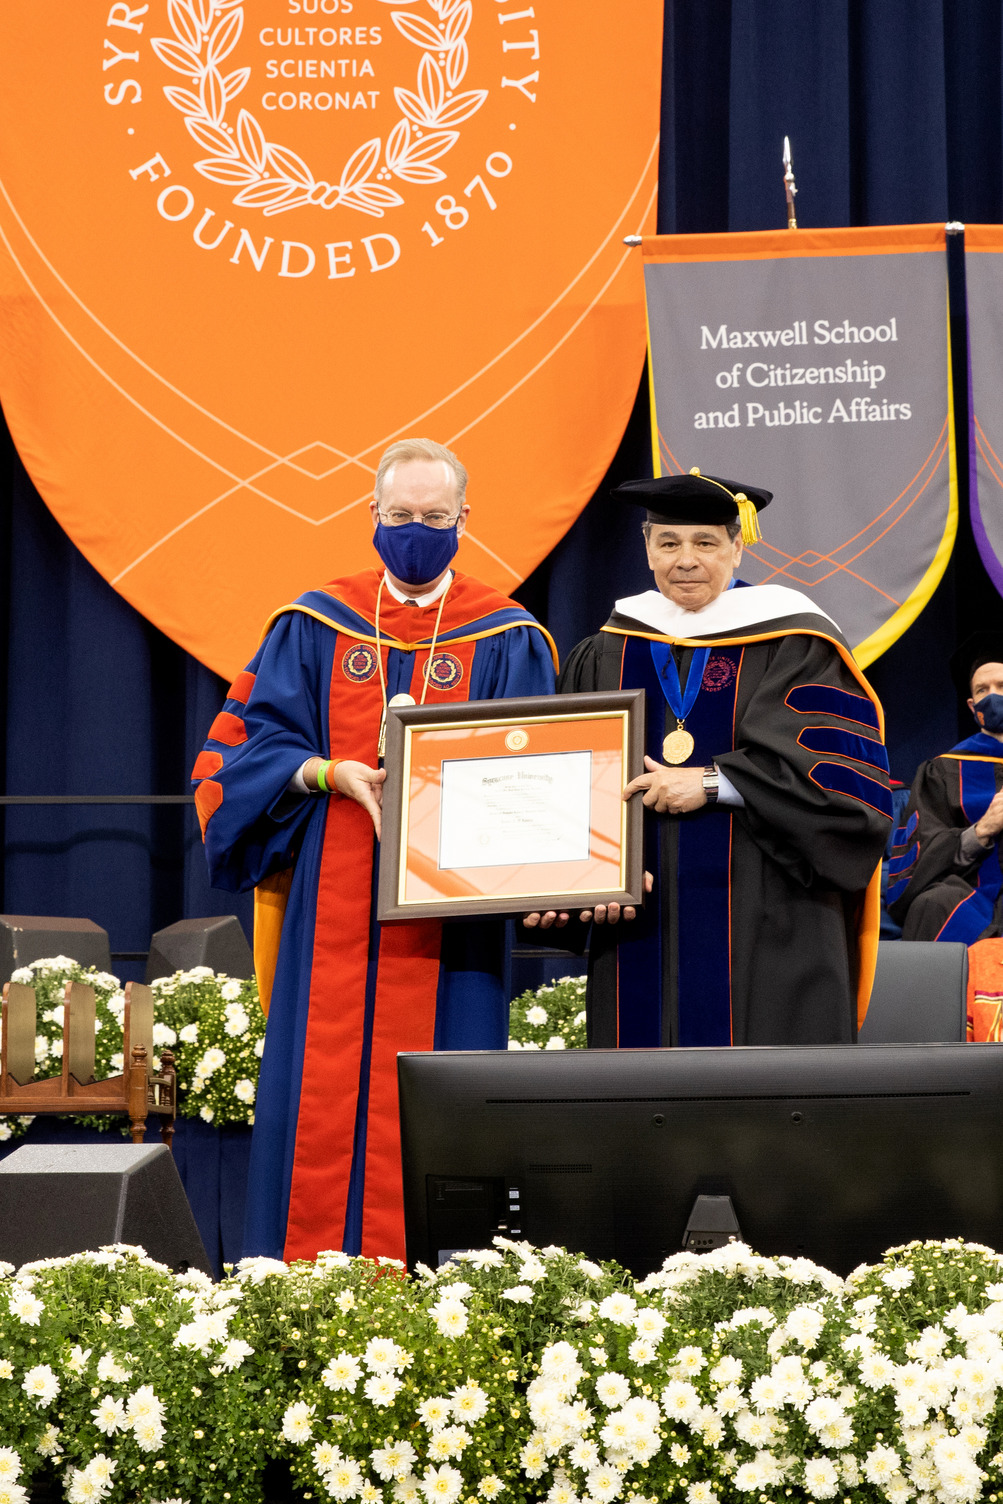 Chancellor Syverud presents an honorary doctor of humane letters degree to Daniel A. D'Aniello '68 at Commencement 2020